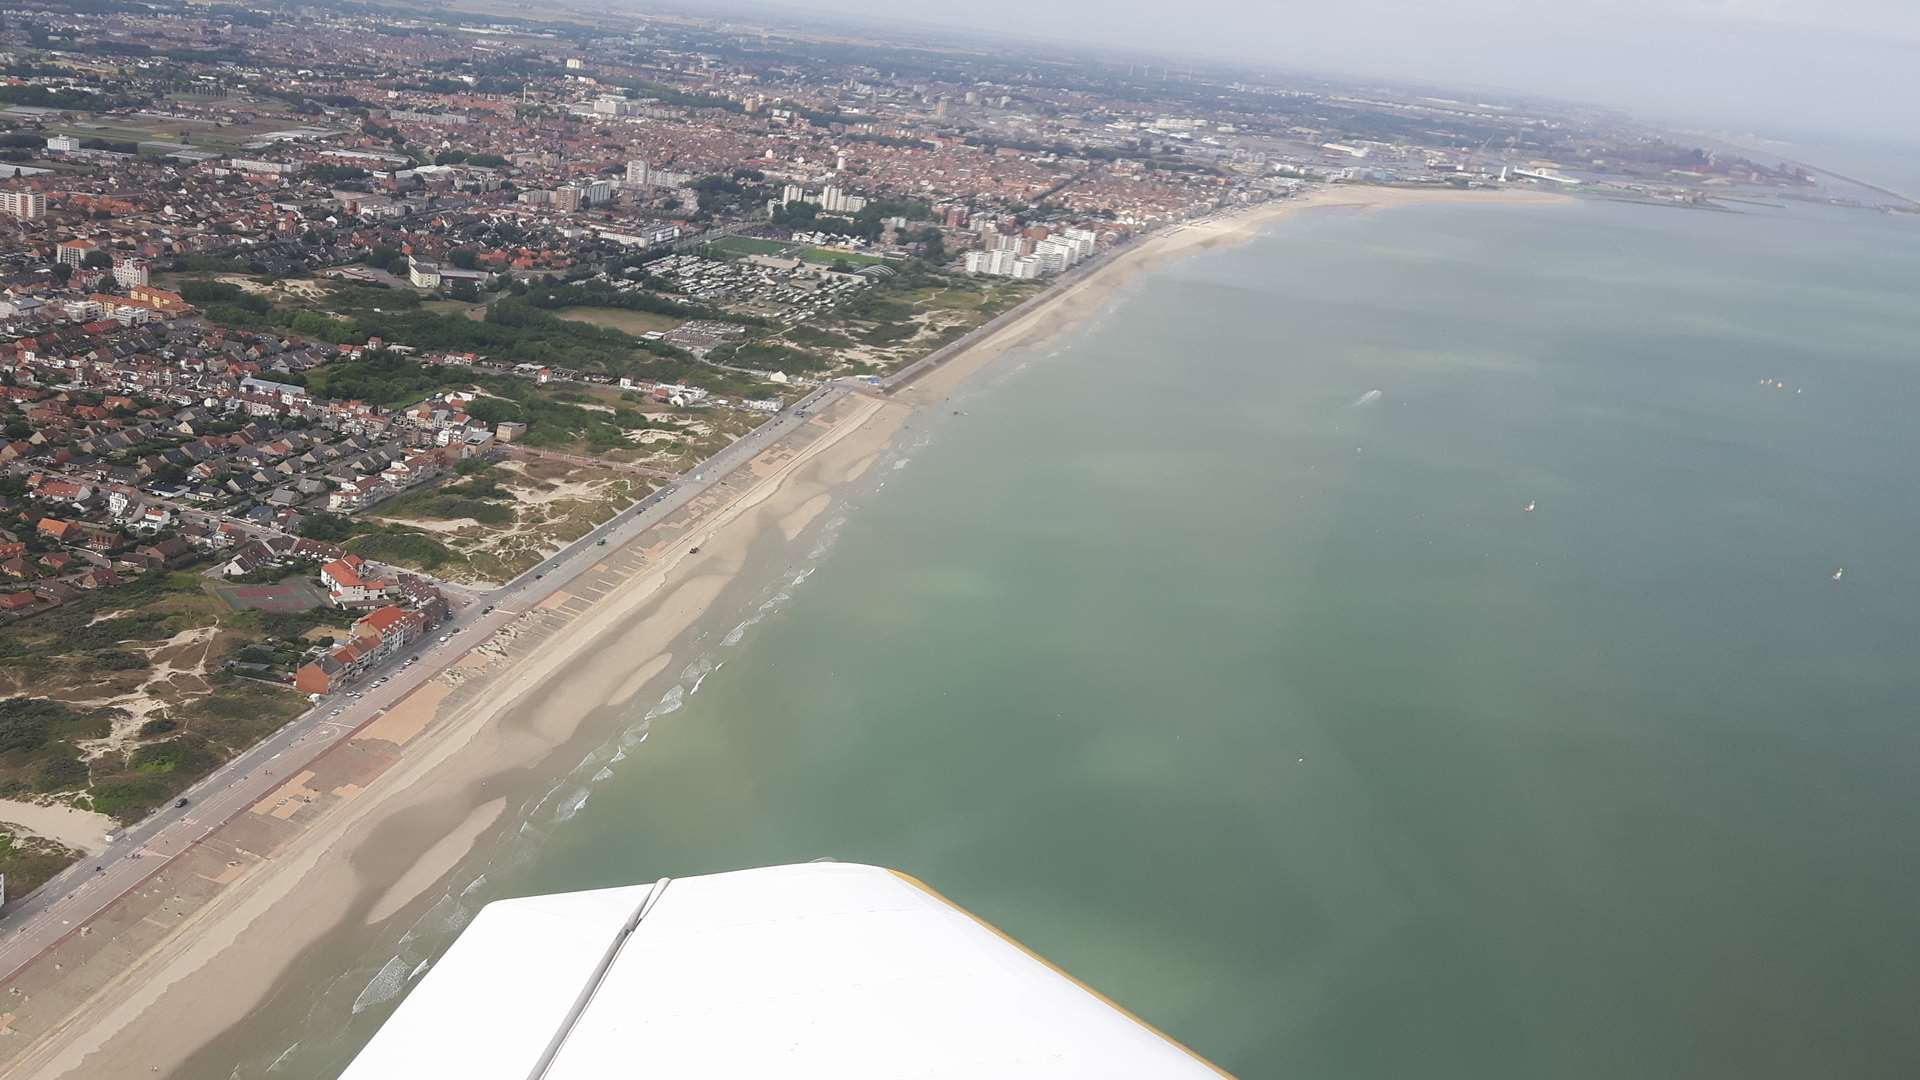 A stunning panaroma of Dunkirk's beaches and the harbour in the distance.